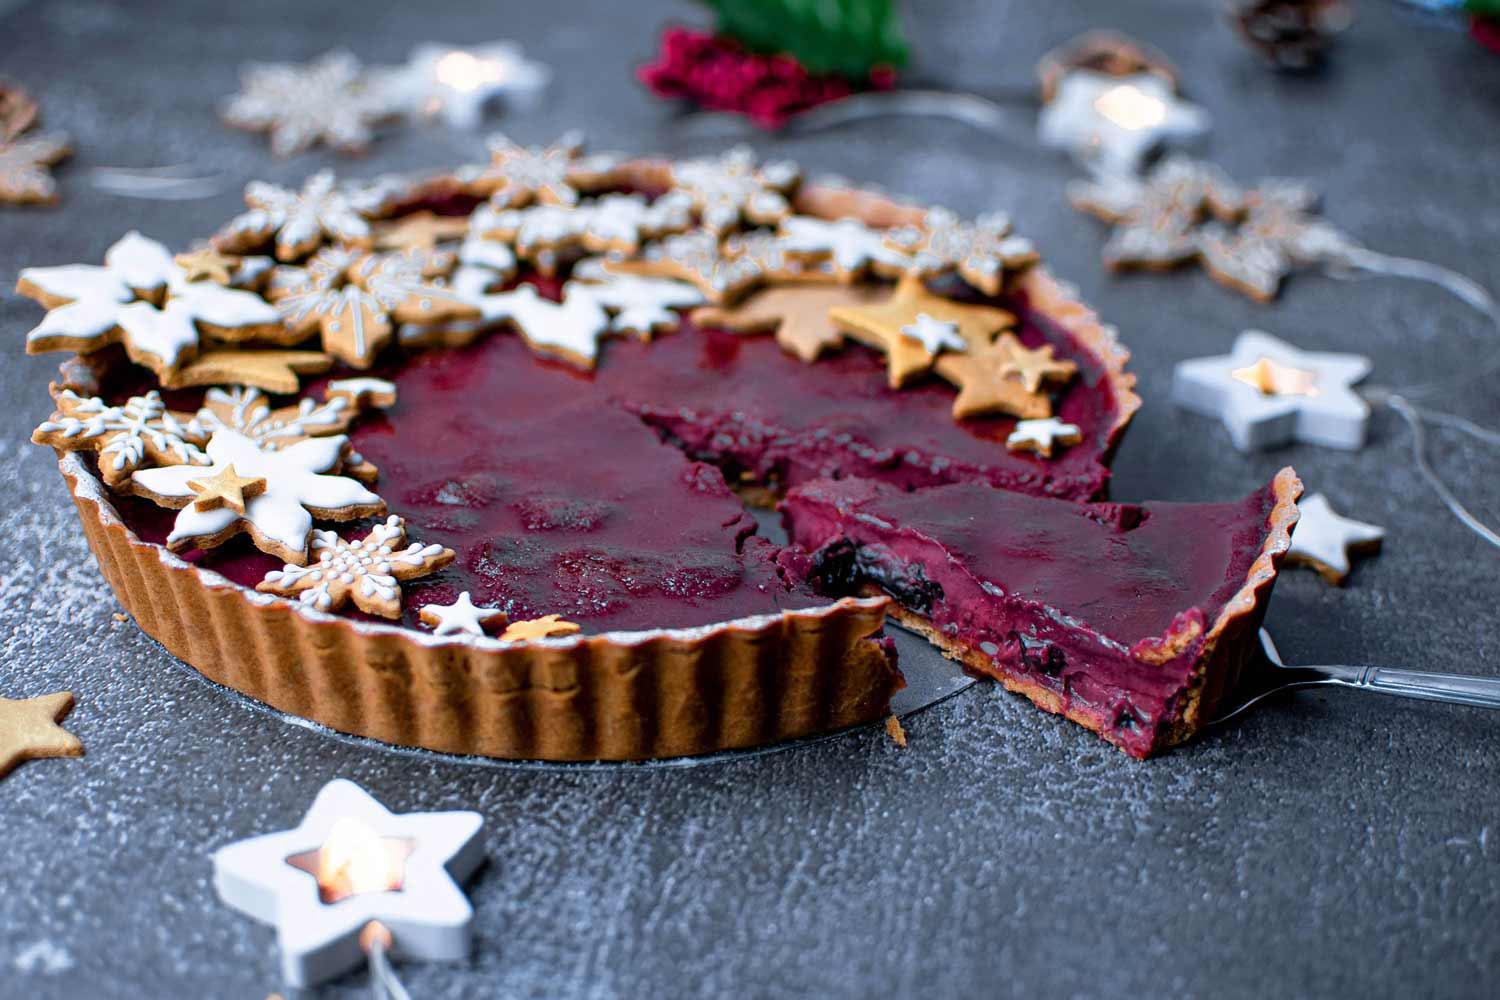 Creme brulee tart with mulled wine with cut slice